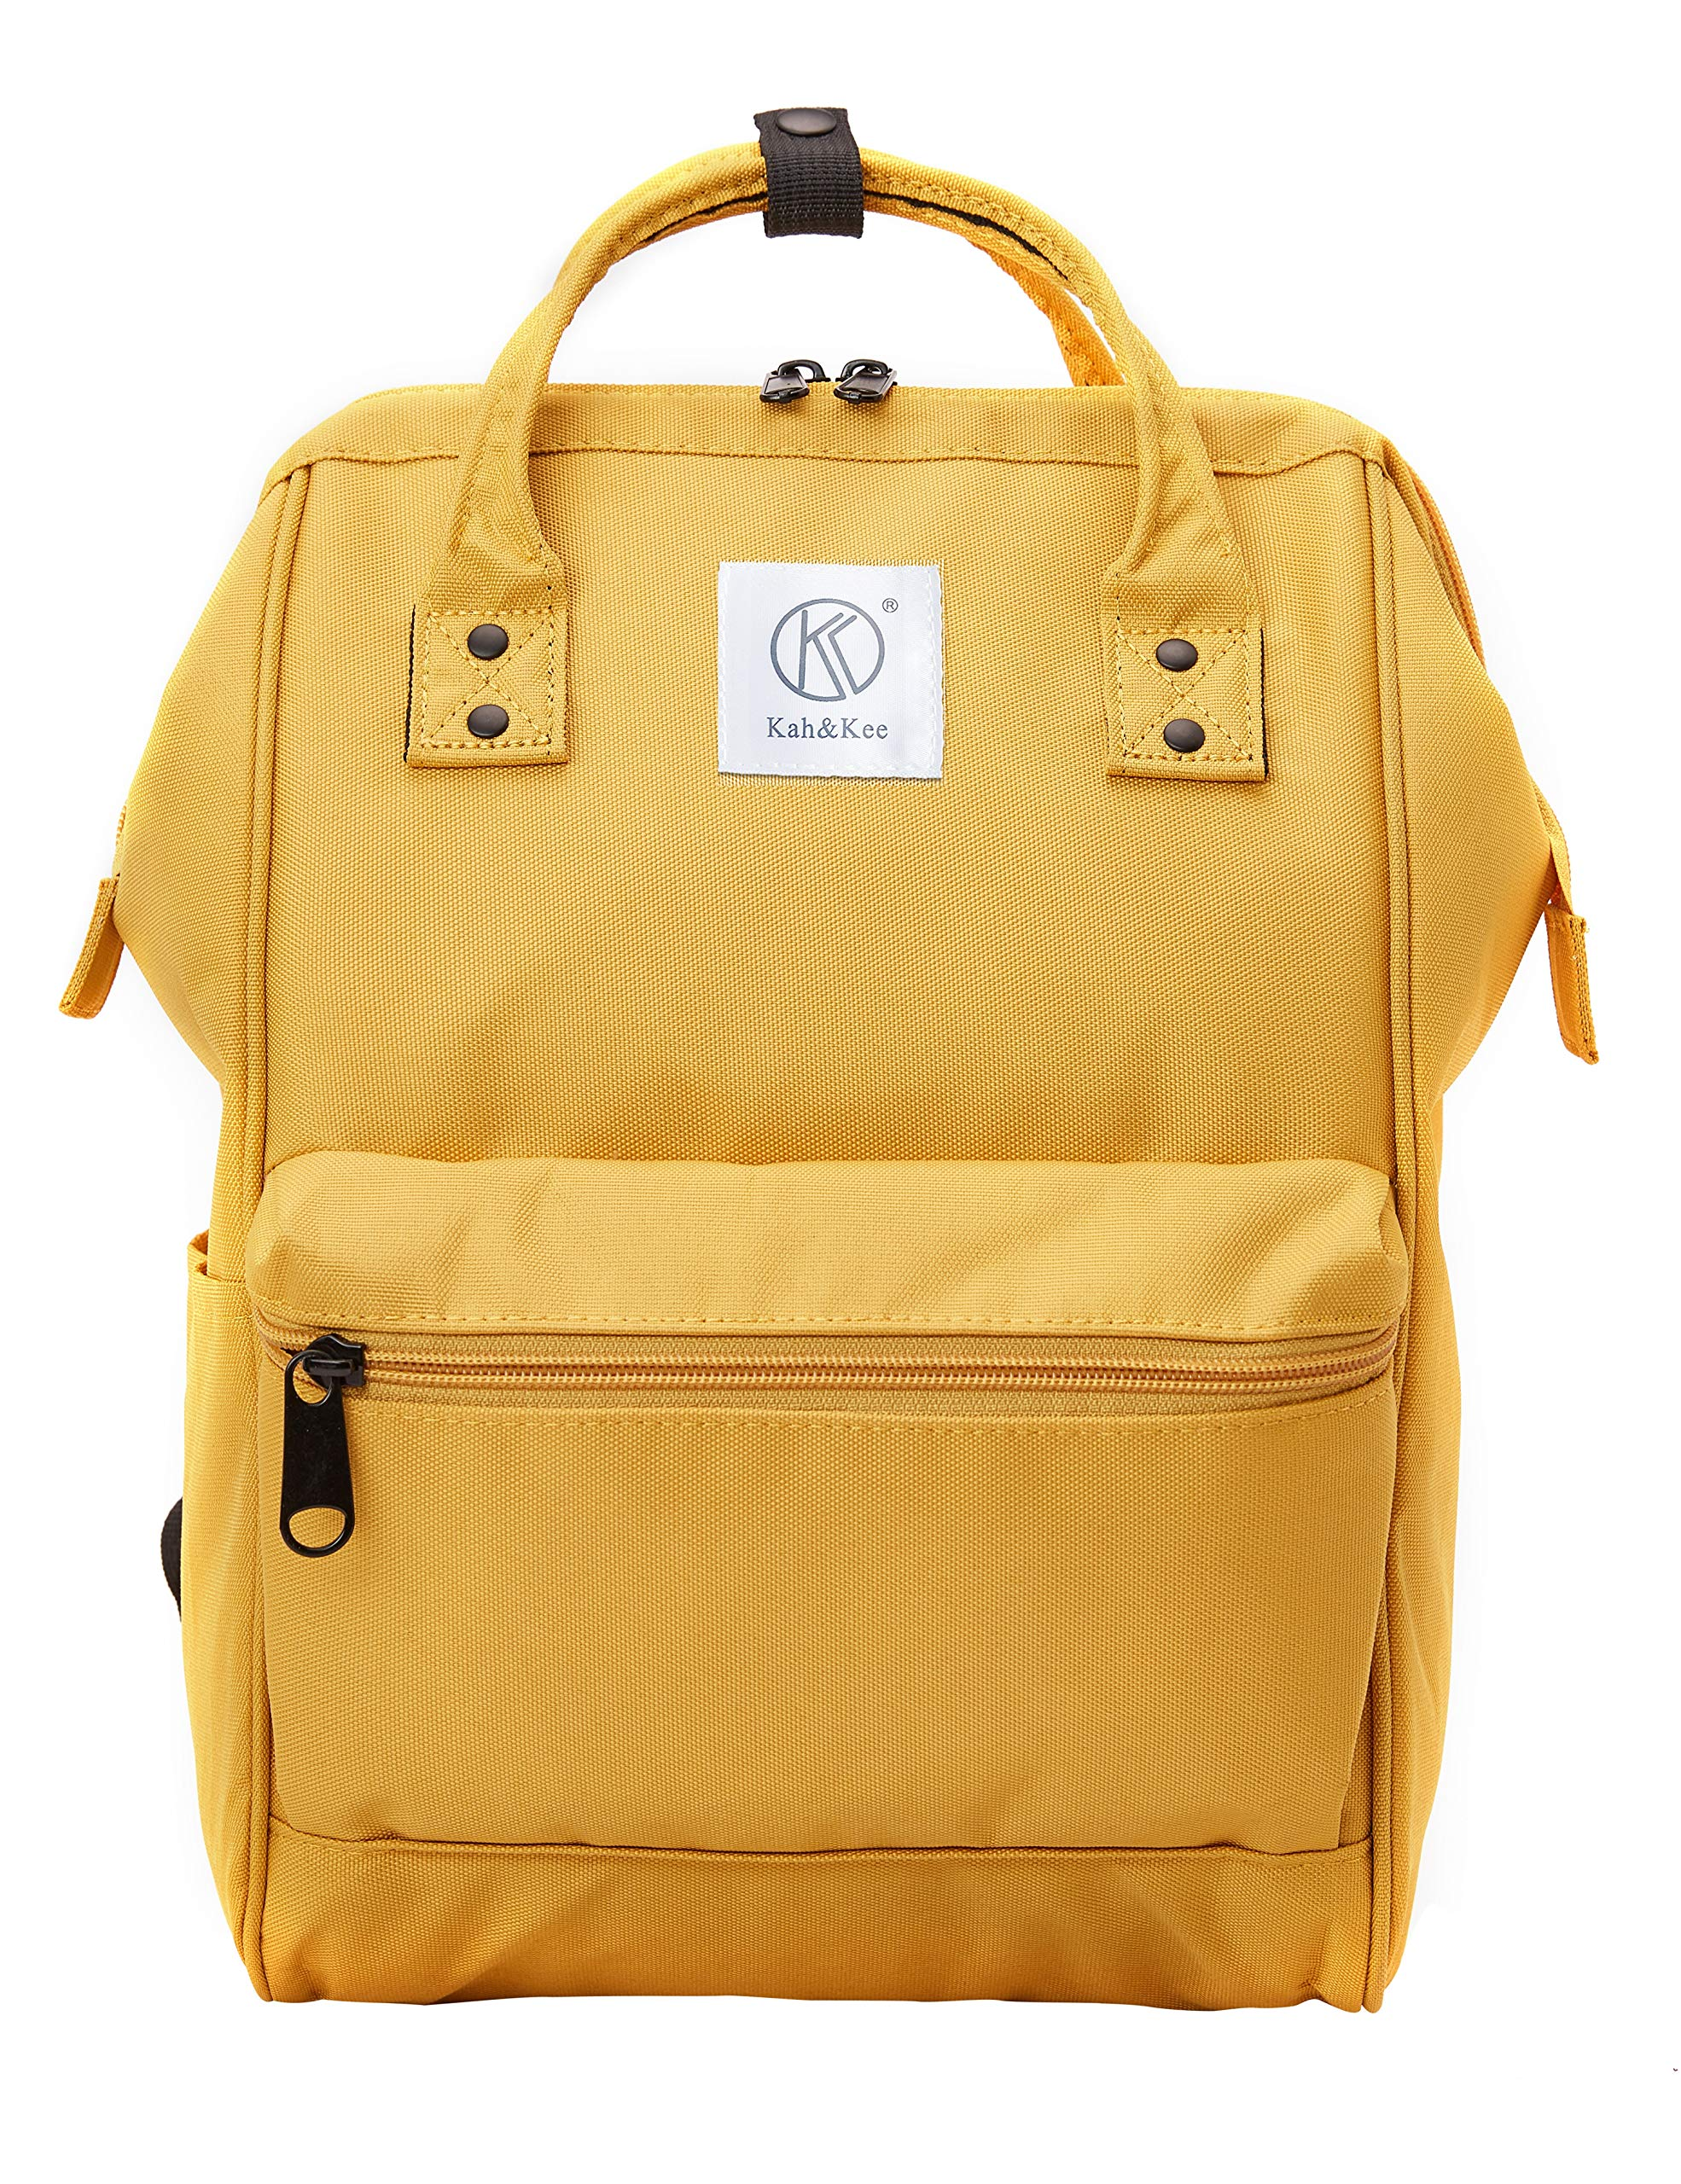 Kah&Kee Polyester Backpack with Laptop Compartment Waterproof Anti-theft Travel School for Women Man (Yellow, Small) by Kah&Kee